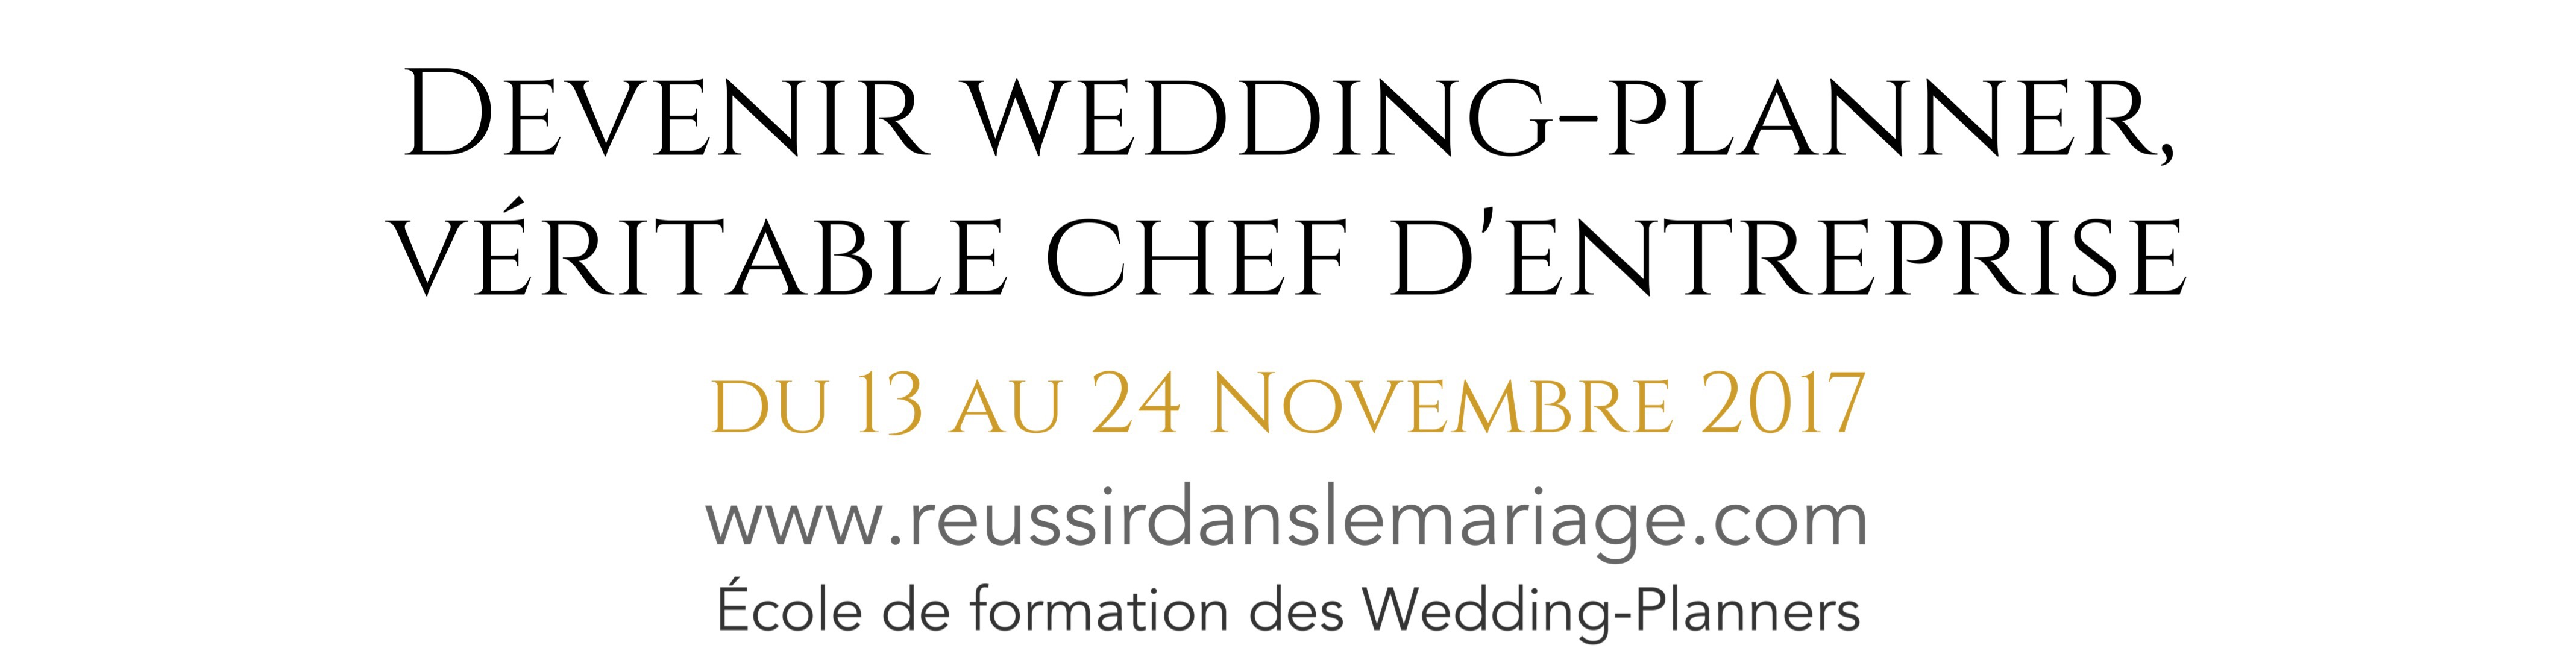 formation devenir wedding planner